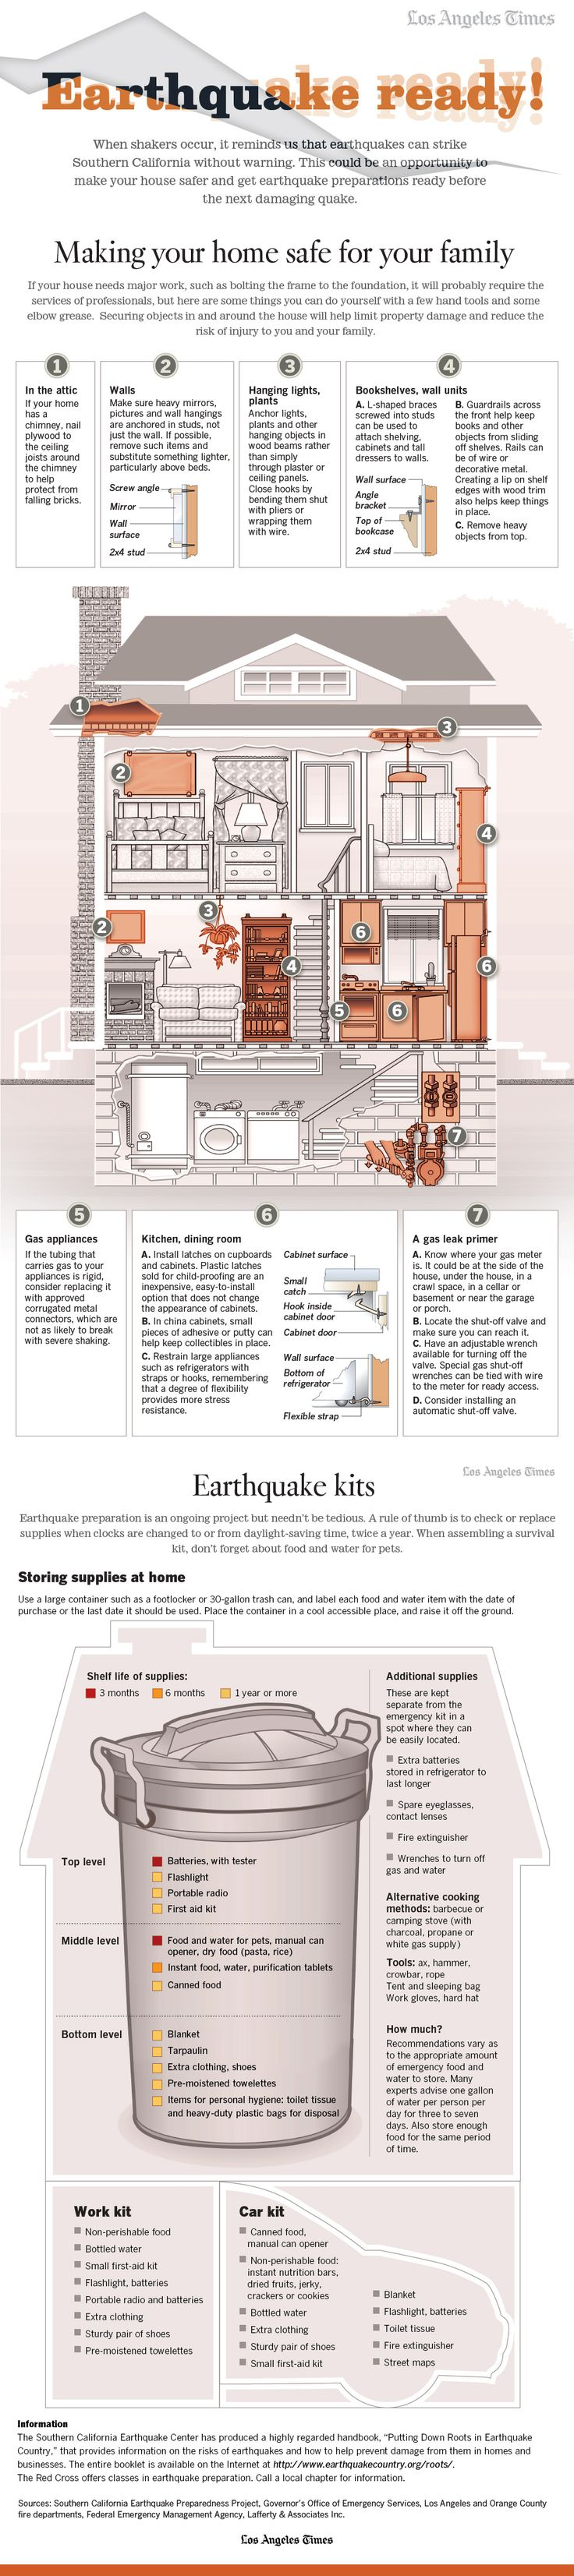 Is your home earthquake-ready? How to prepare for the big one - Los Angeles Times